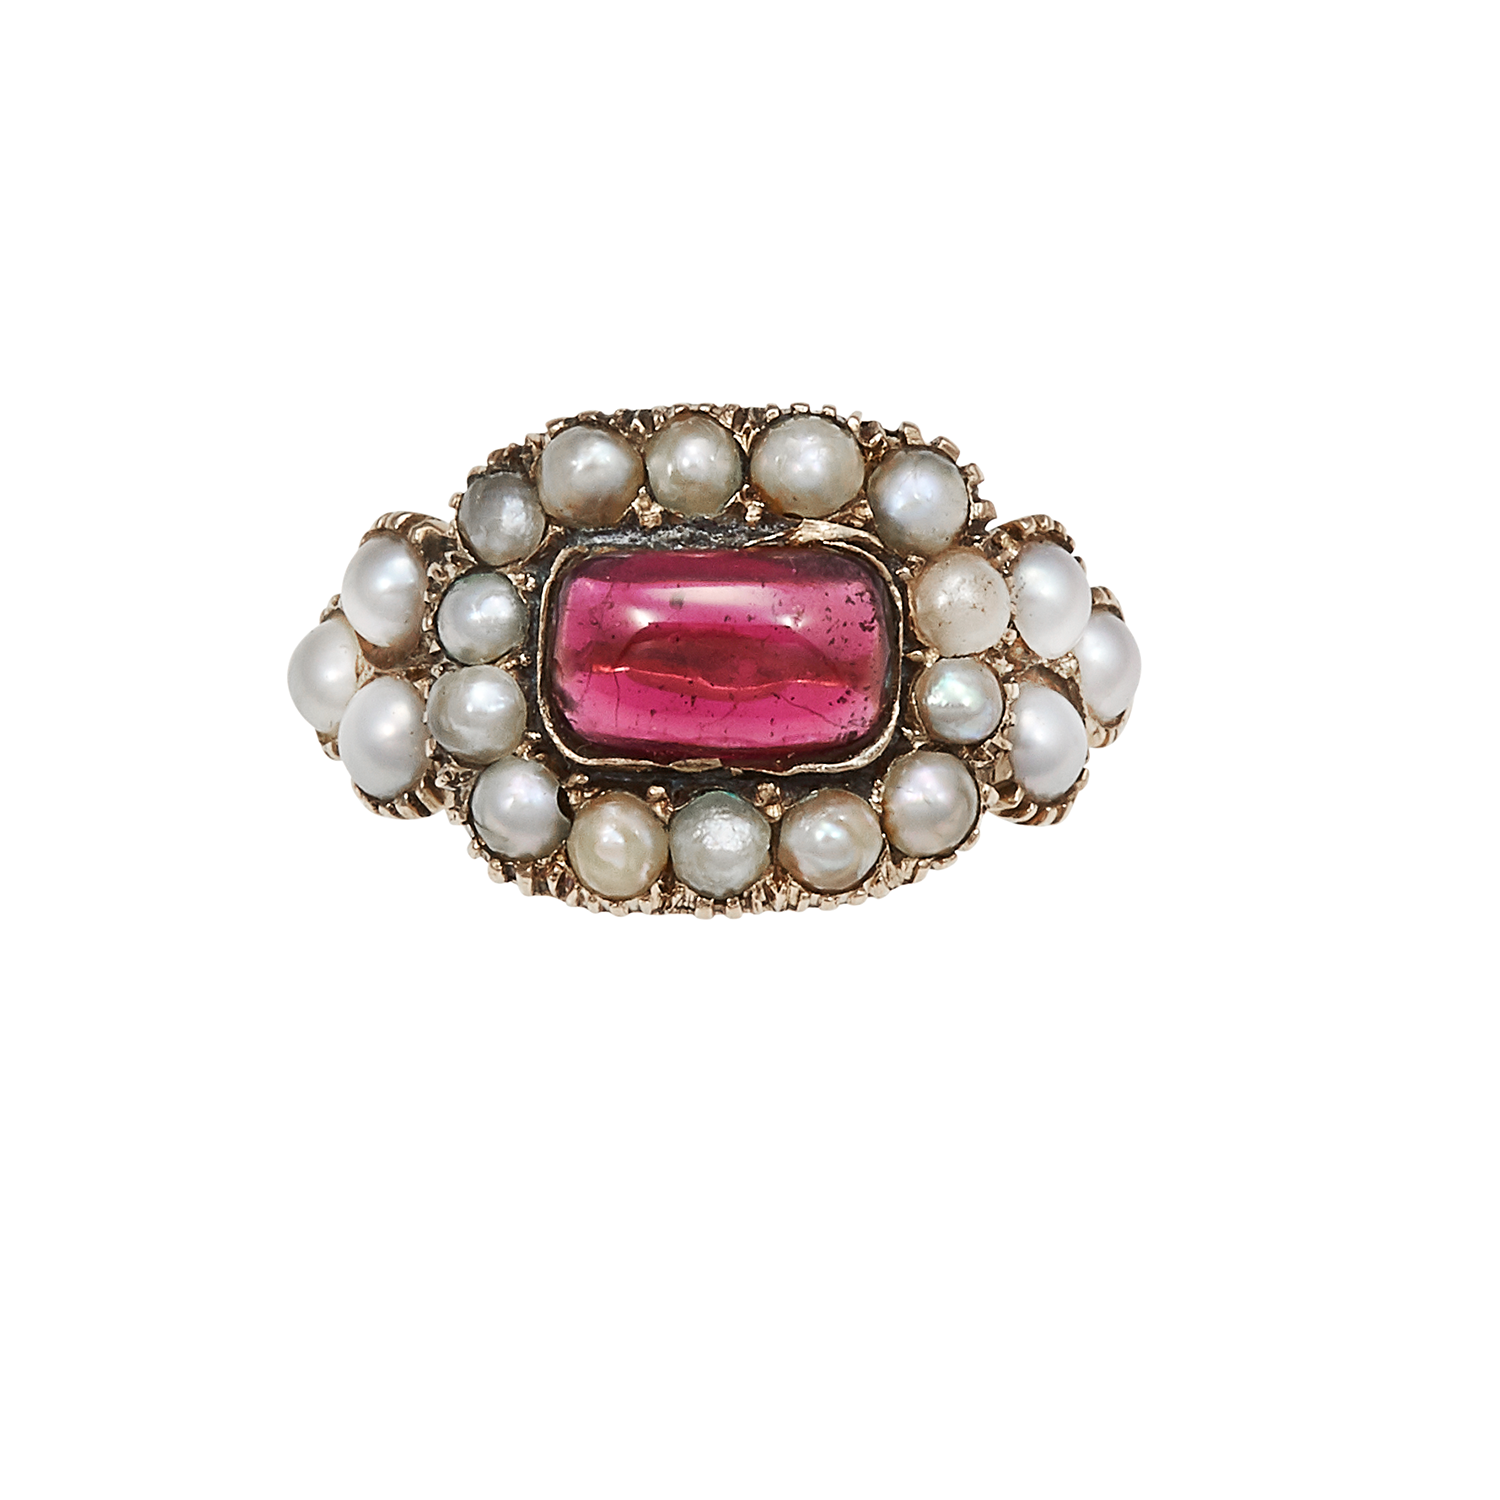 Los 17 - AN ANTIQUE GARNET AND SEED PEARL RING, EARLY 19TH CENTURY in high carat yellow gold, the rounded